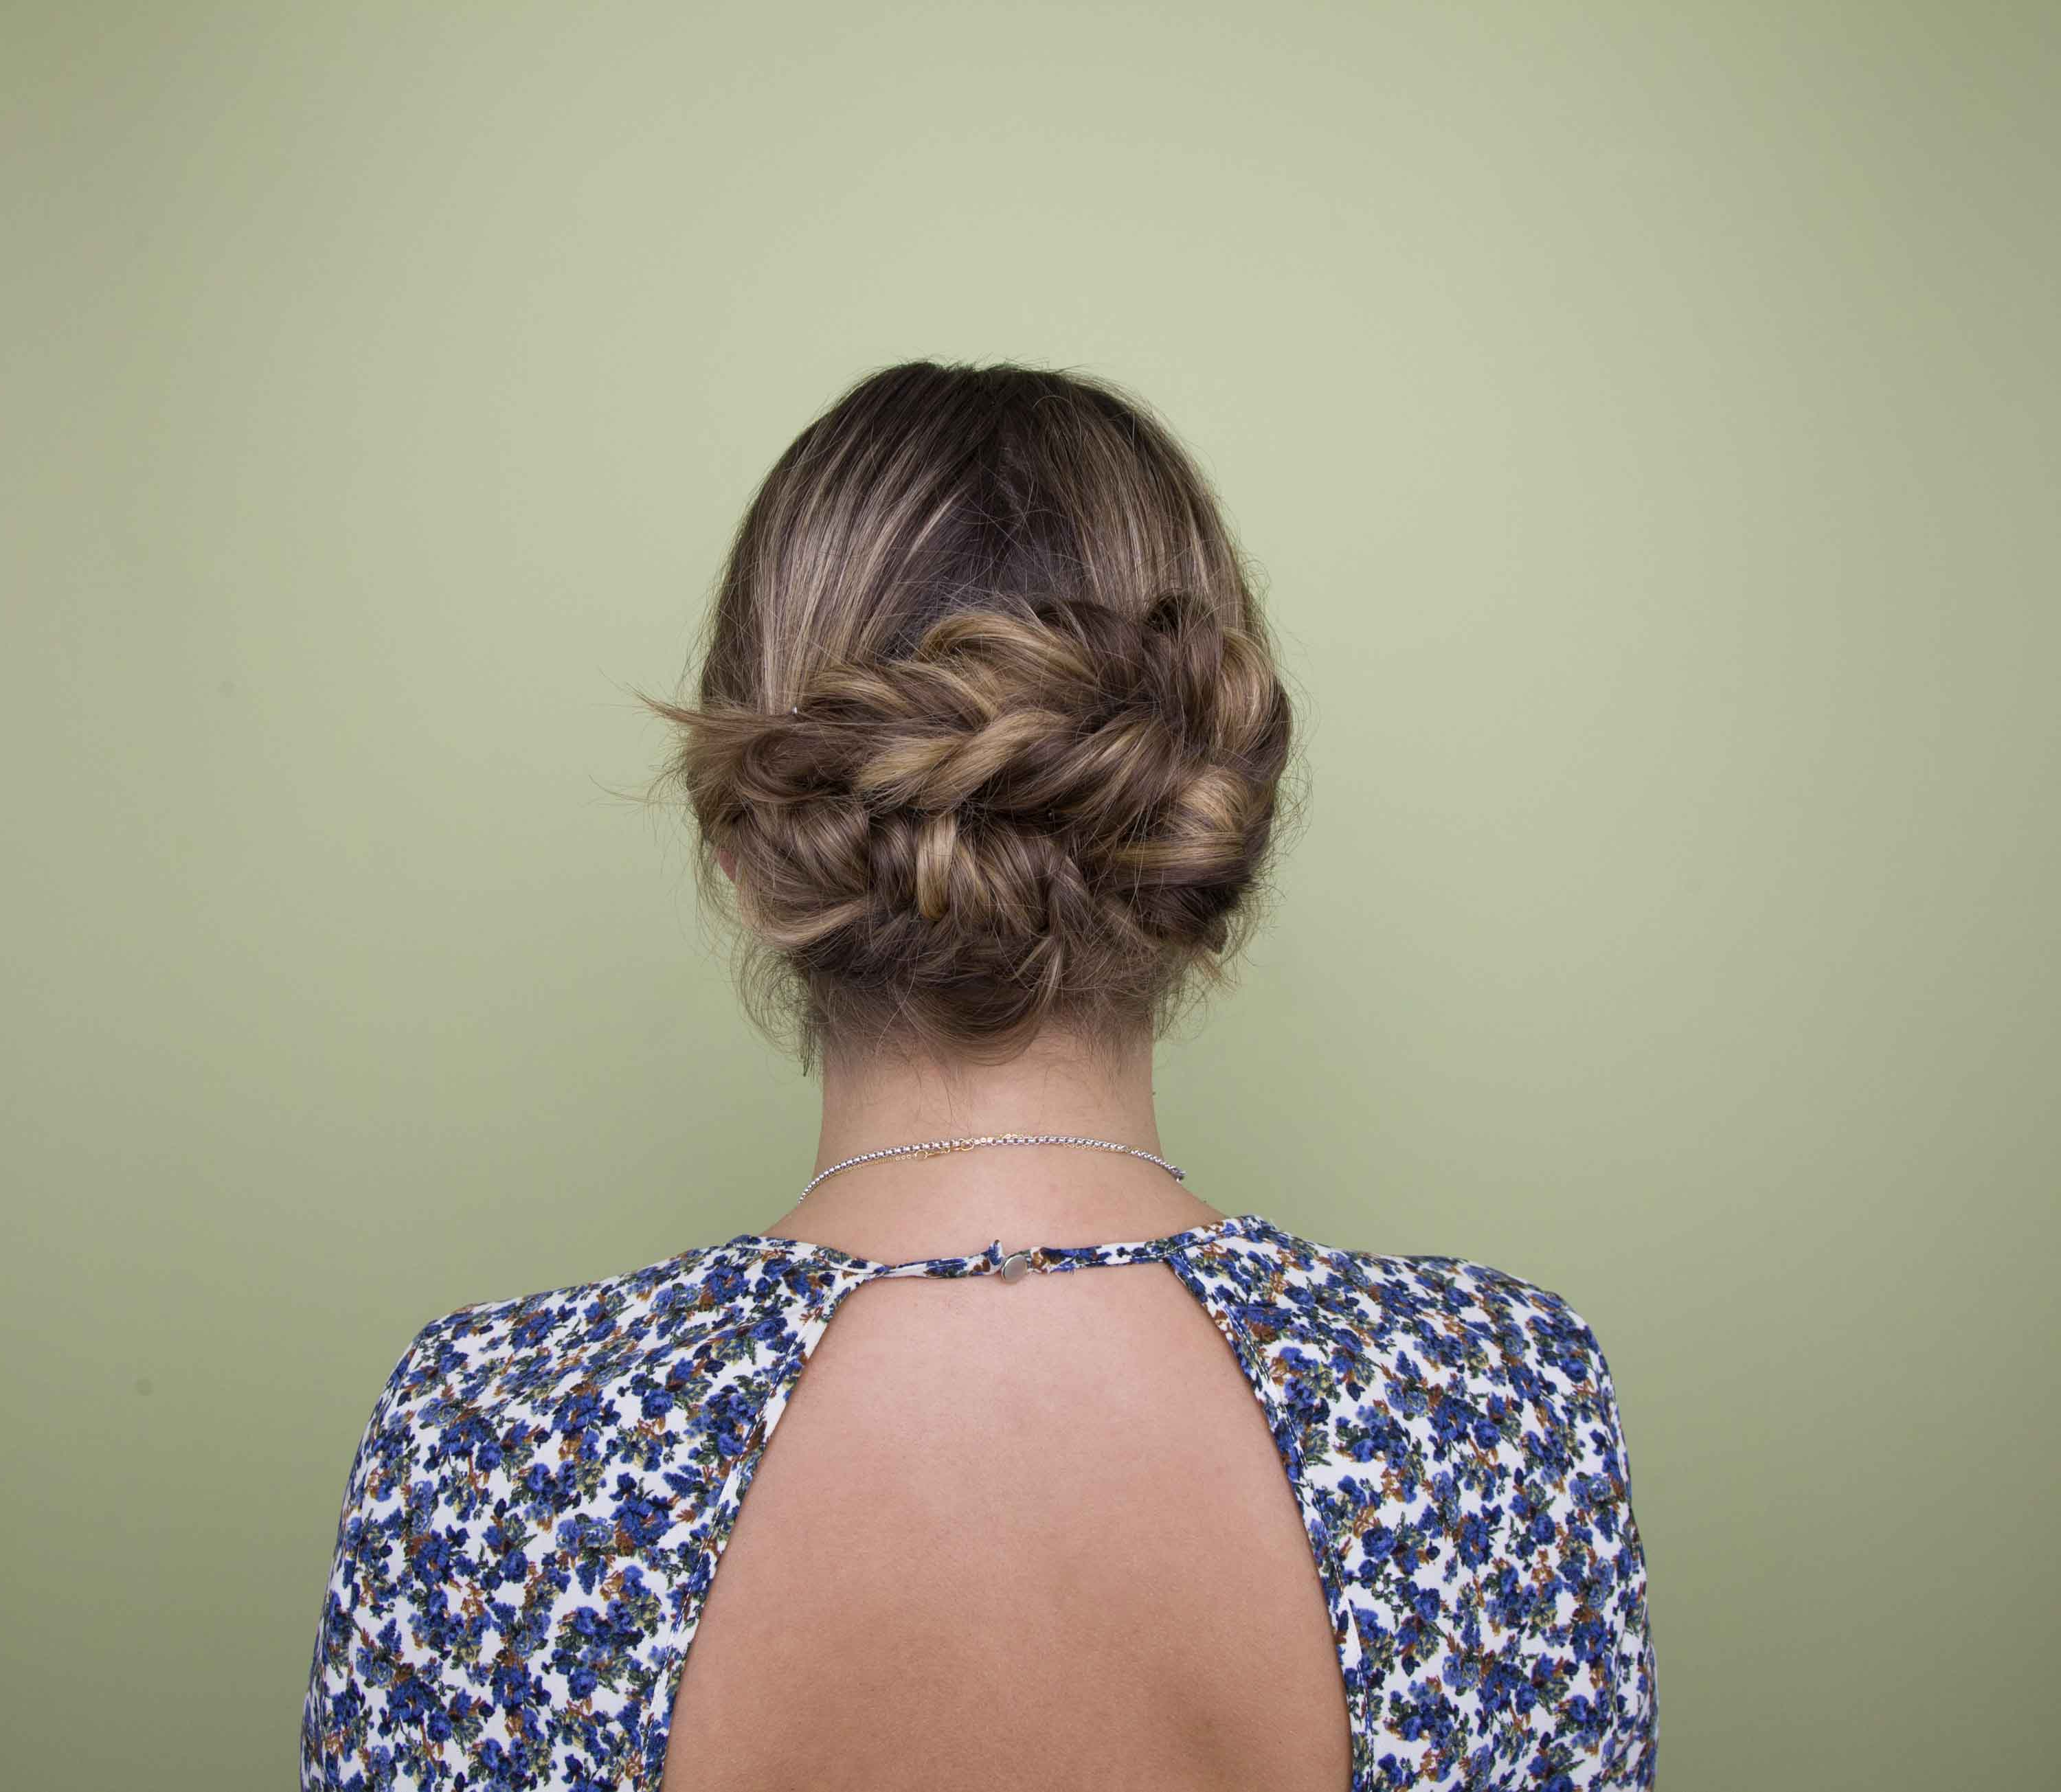 Most Current Stacked Buns Updo Hairstyles Inside Updo Hairstyles For Work: 6 Looks For Any Hair Type (View 12 of 20)